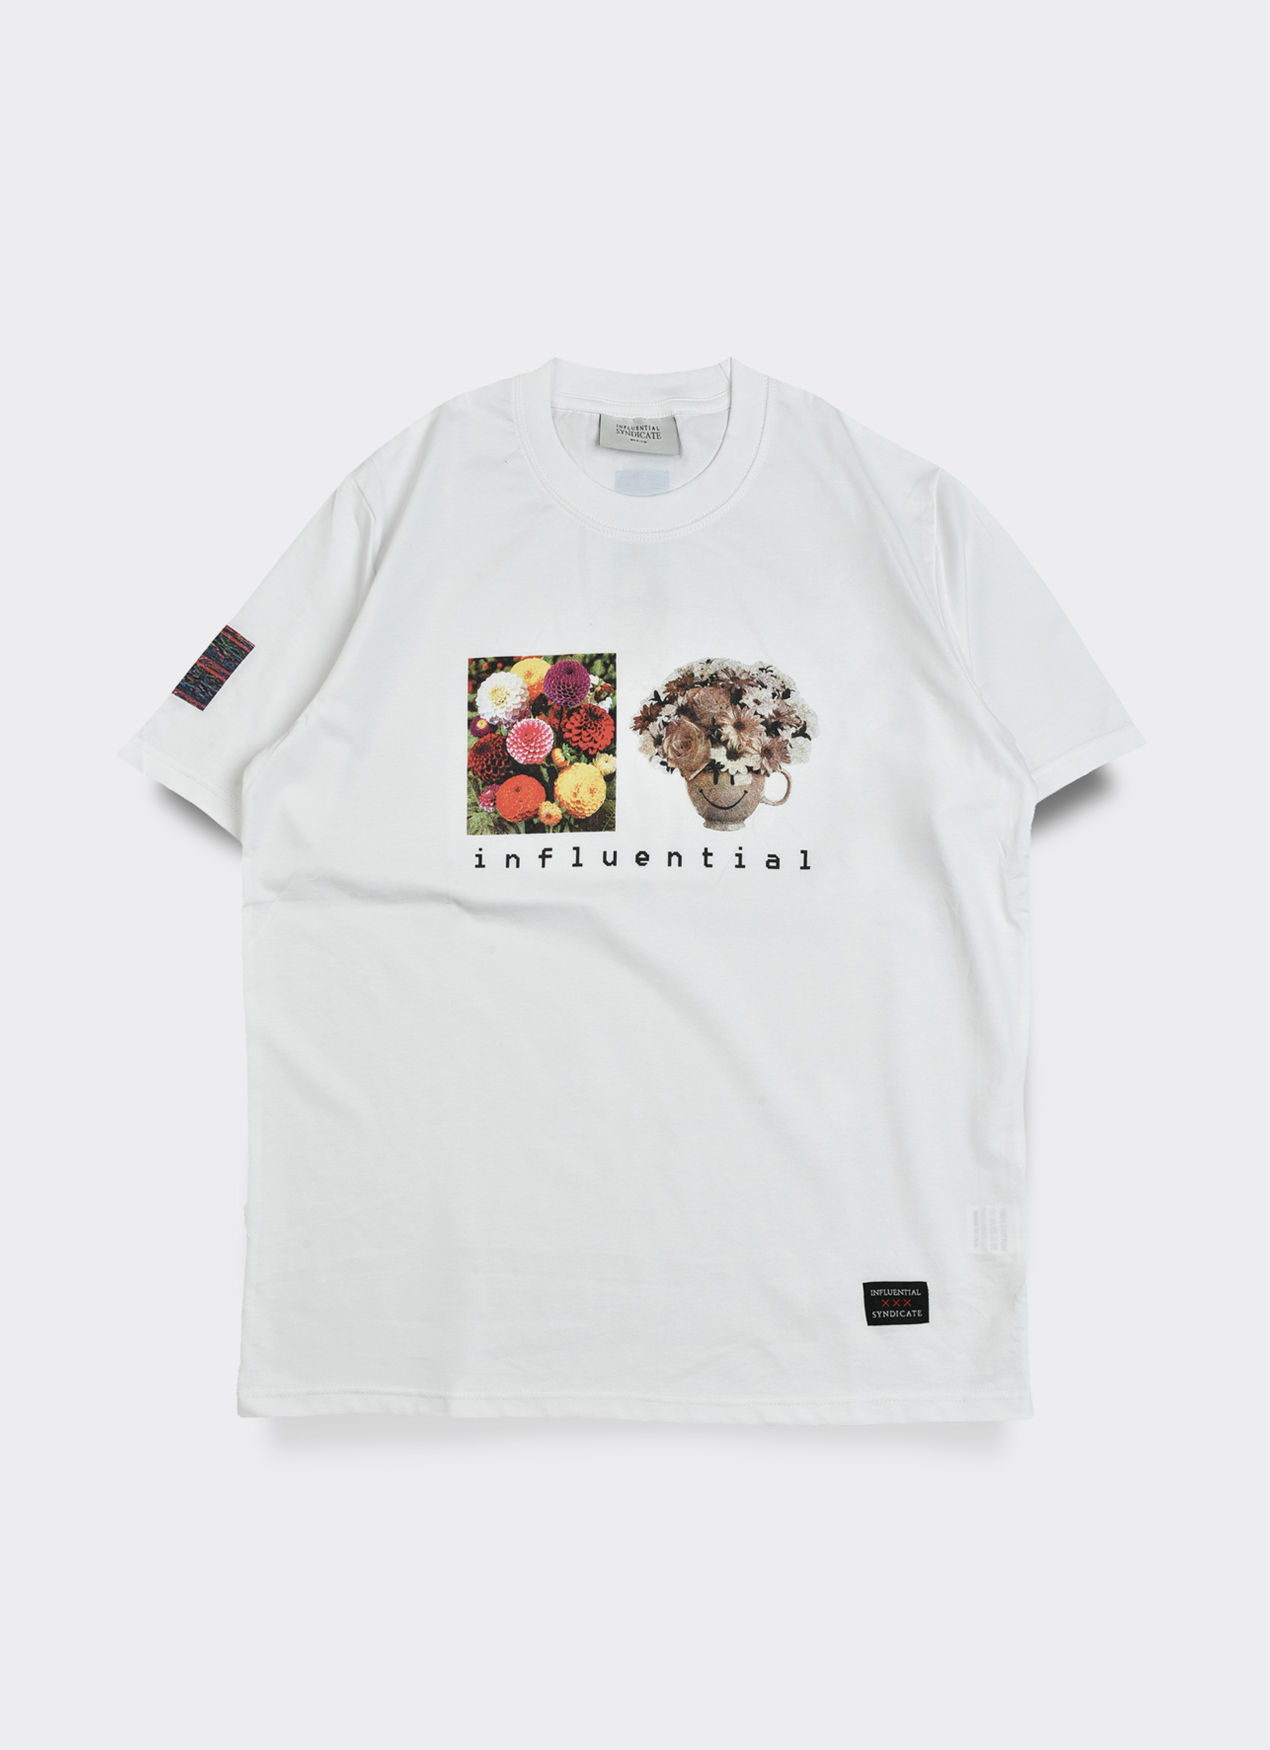 6d7a06339d13f Buy Original Influential Syndicate Flower T-Shirt - White at ...